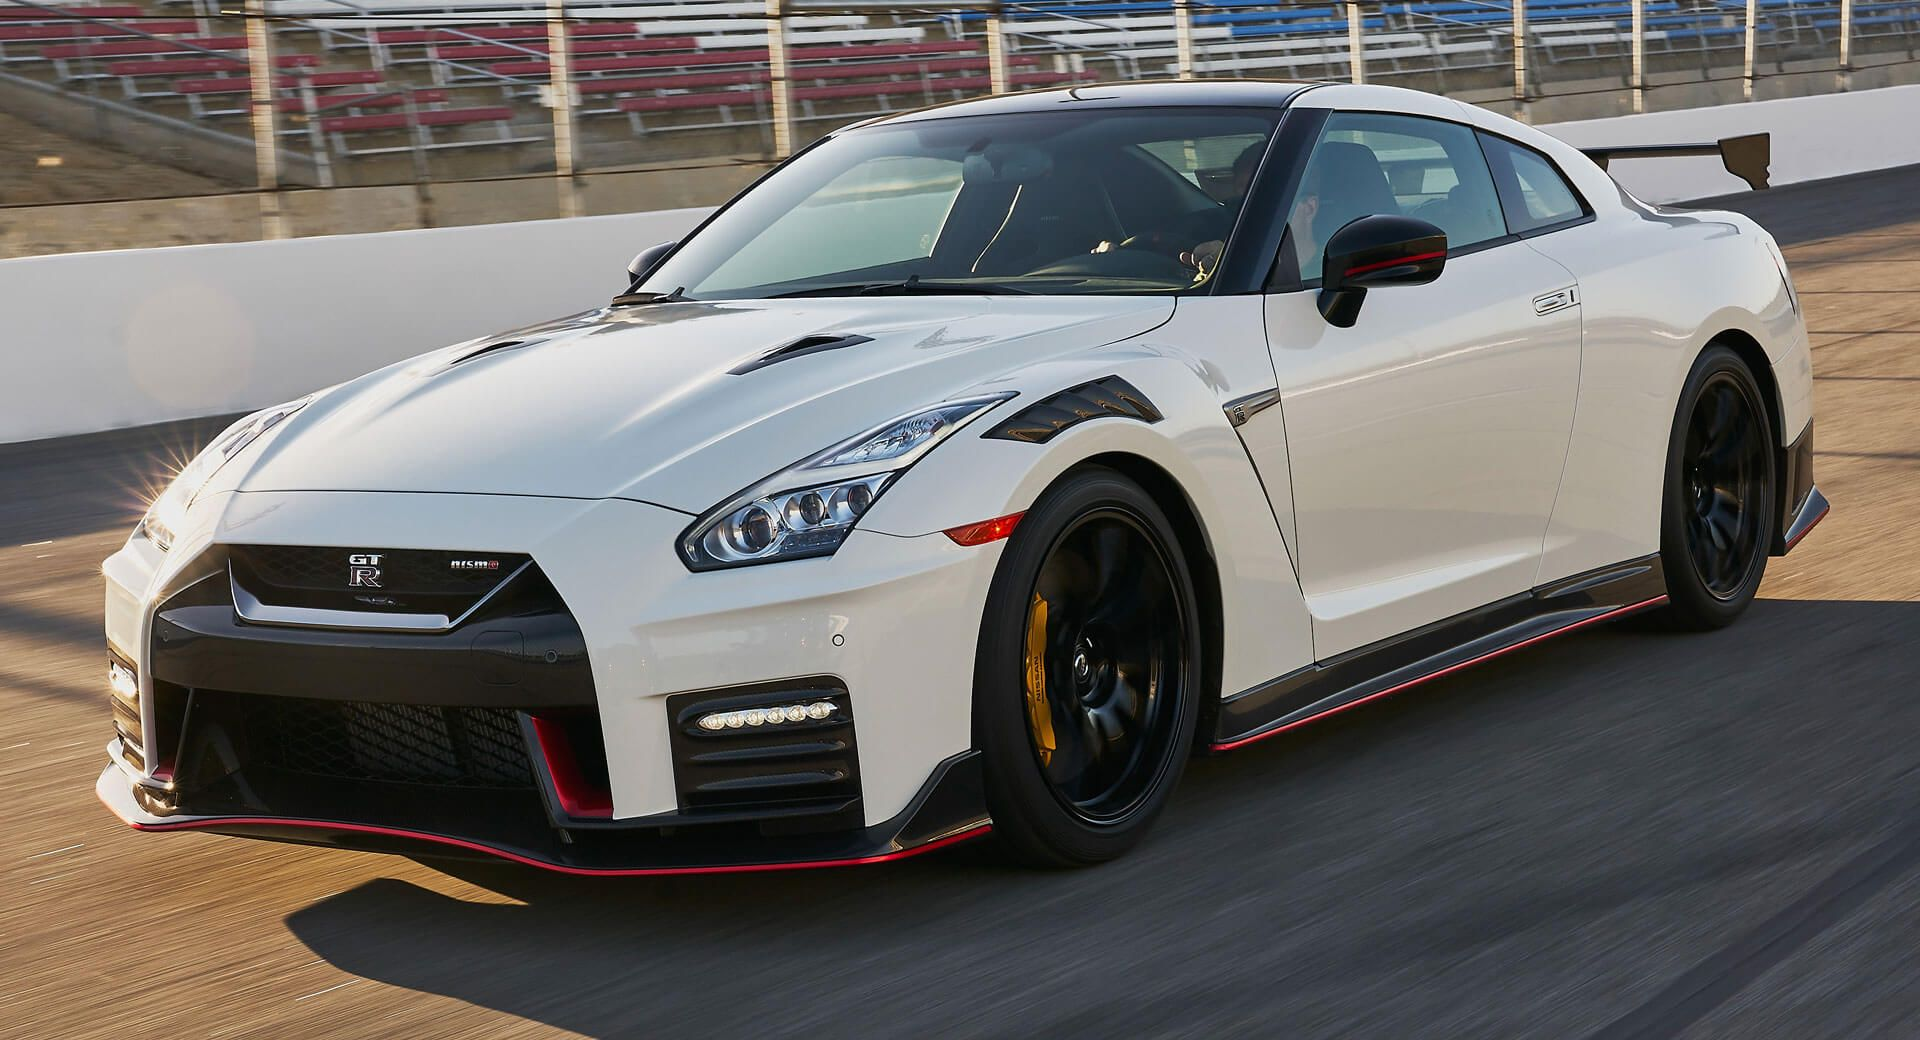 2021 Nissan GT-R Priced From $113,540, Nismo Still Costs A Whopping $210,740